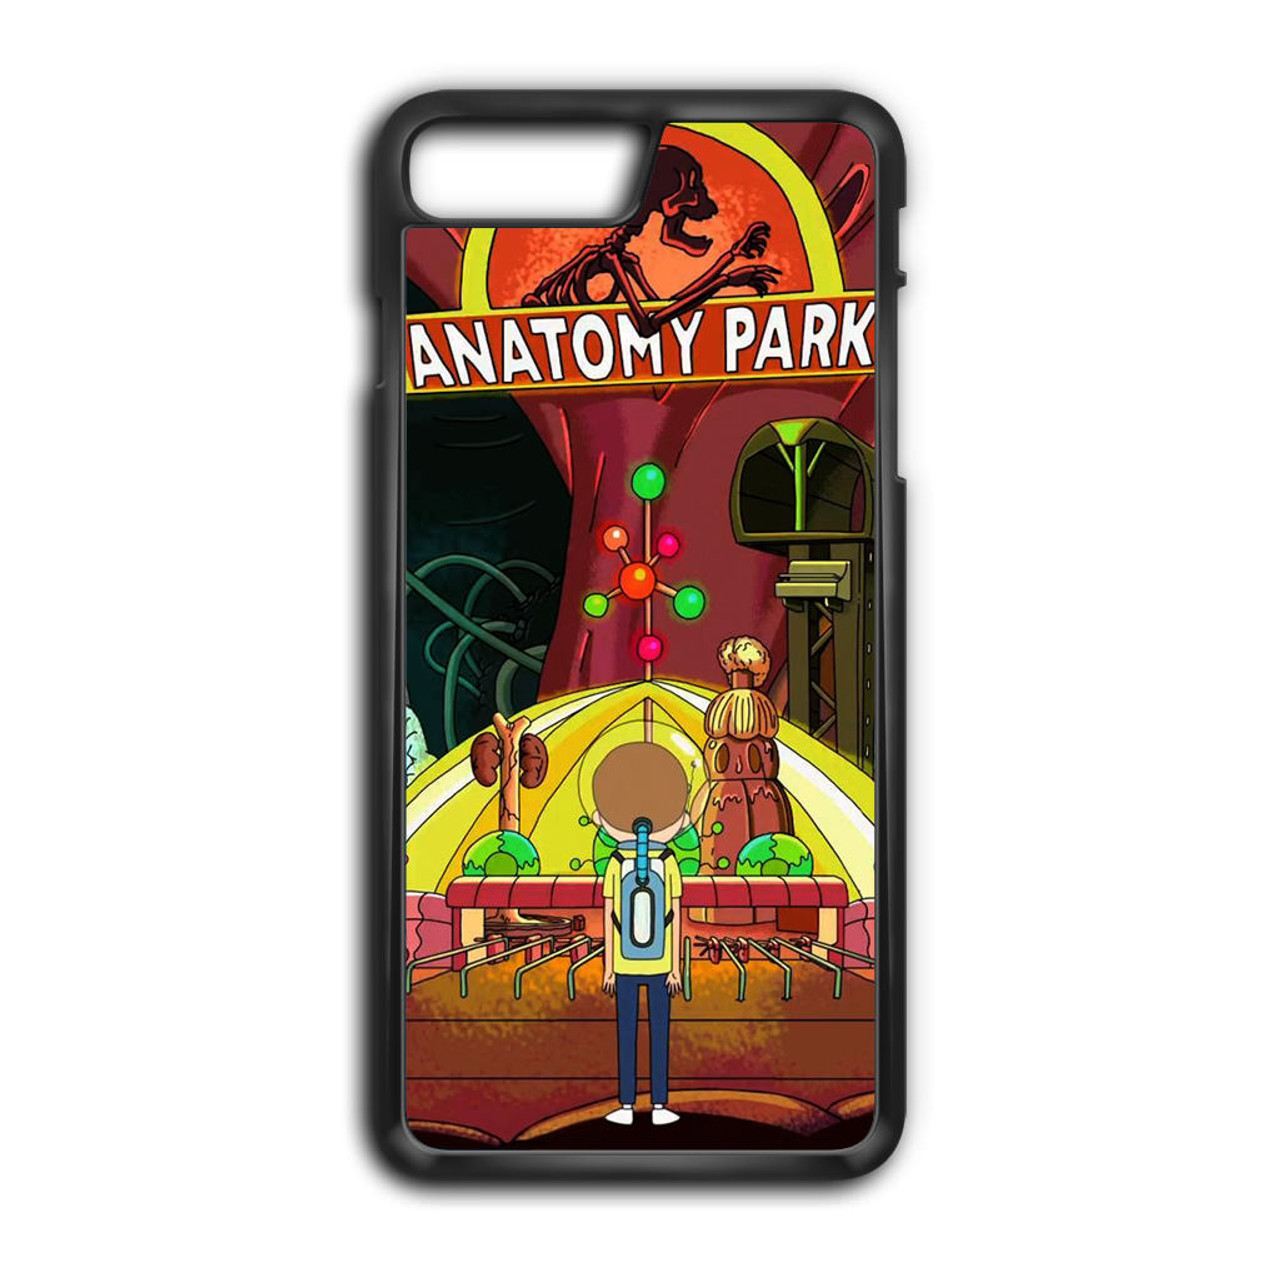 Rick And Morty Anatomy Park iPhone 8 Plus Case - CASESHUNTER